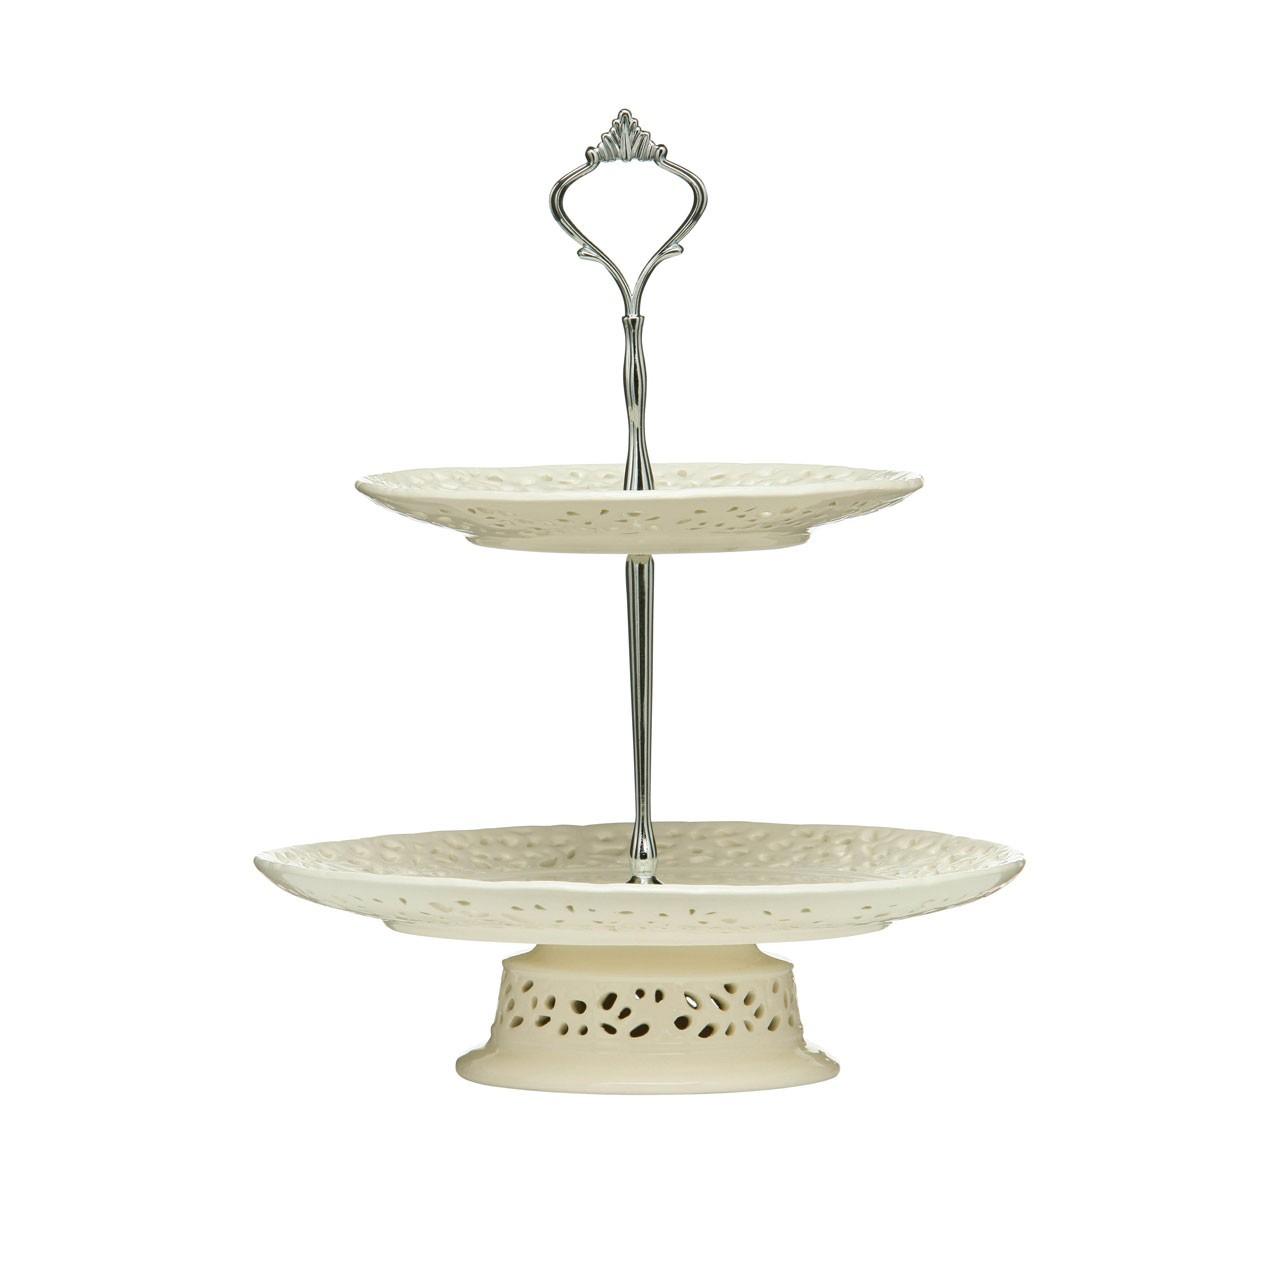 2-Tier Lace Cake Stand - Cream